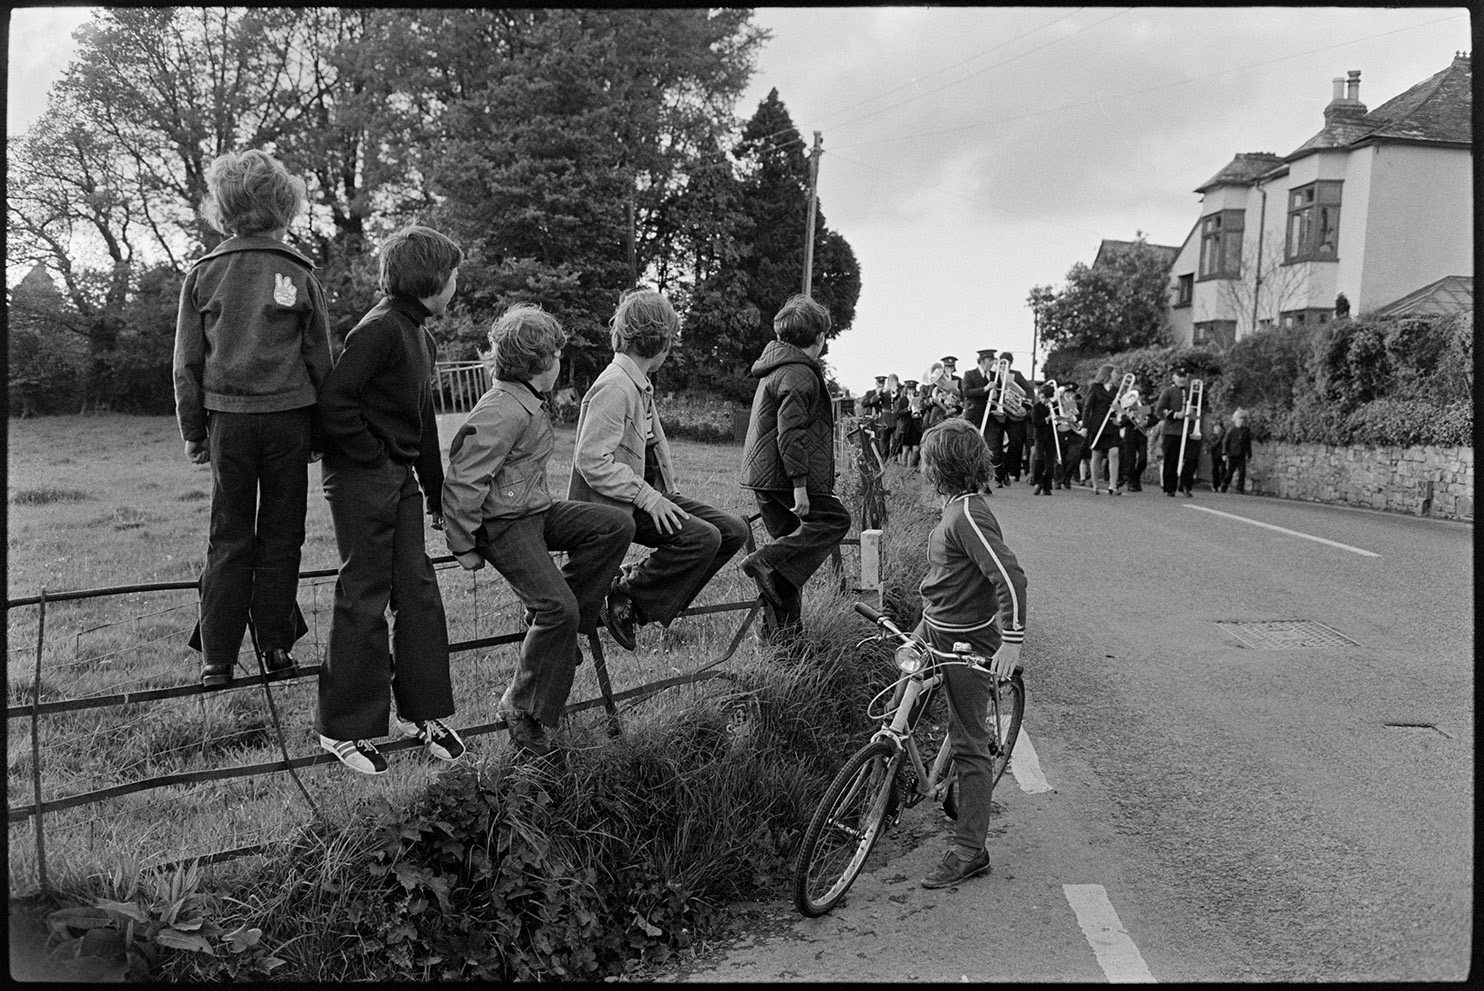 Children watching approaching band, Hatherleigh, 15 May 1976. Documentary photograph by James Ravilious for the Beaford Archive © Beaford Arts